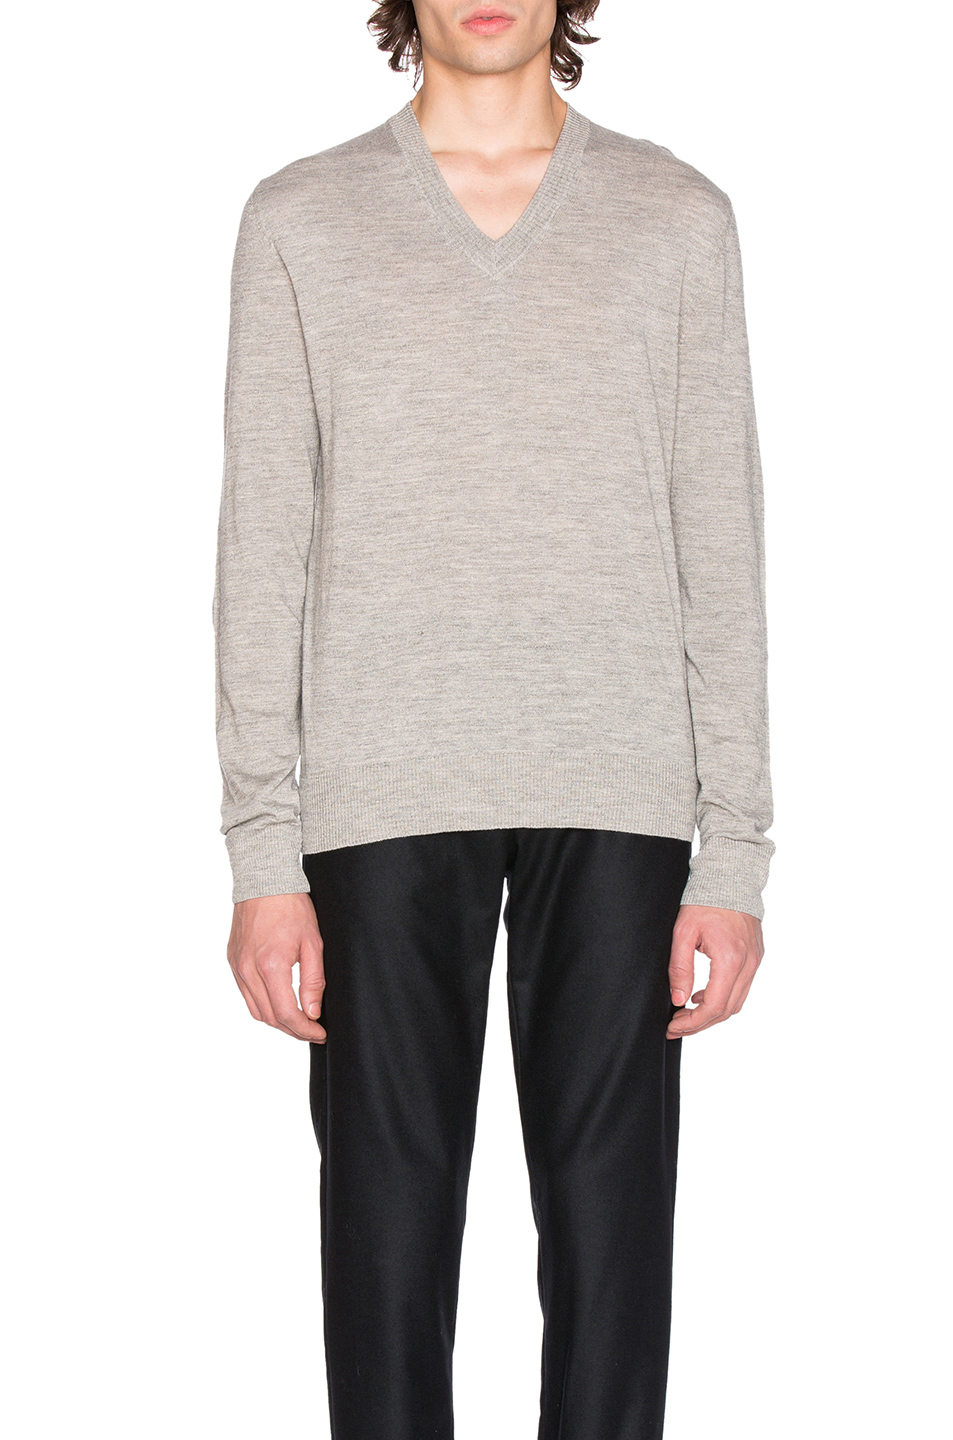 Maison Margiela Jersey V Neck Sweater with Elbow Patches in Gray